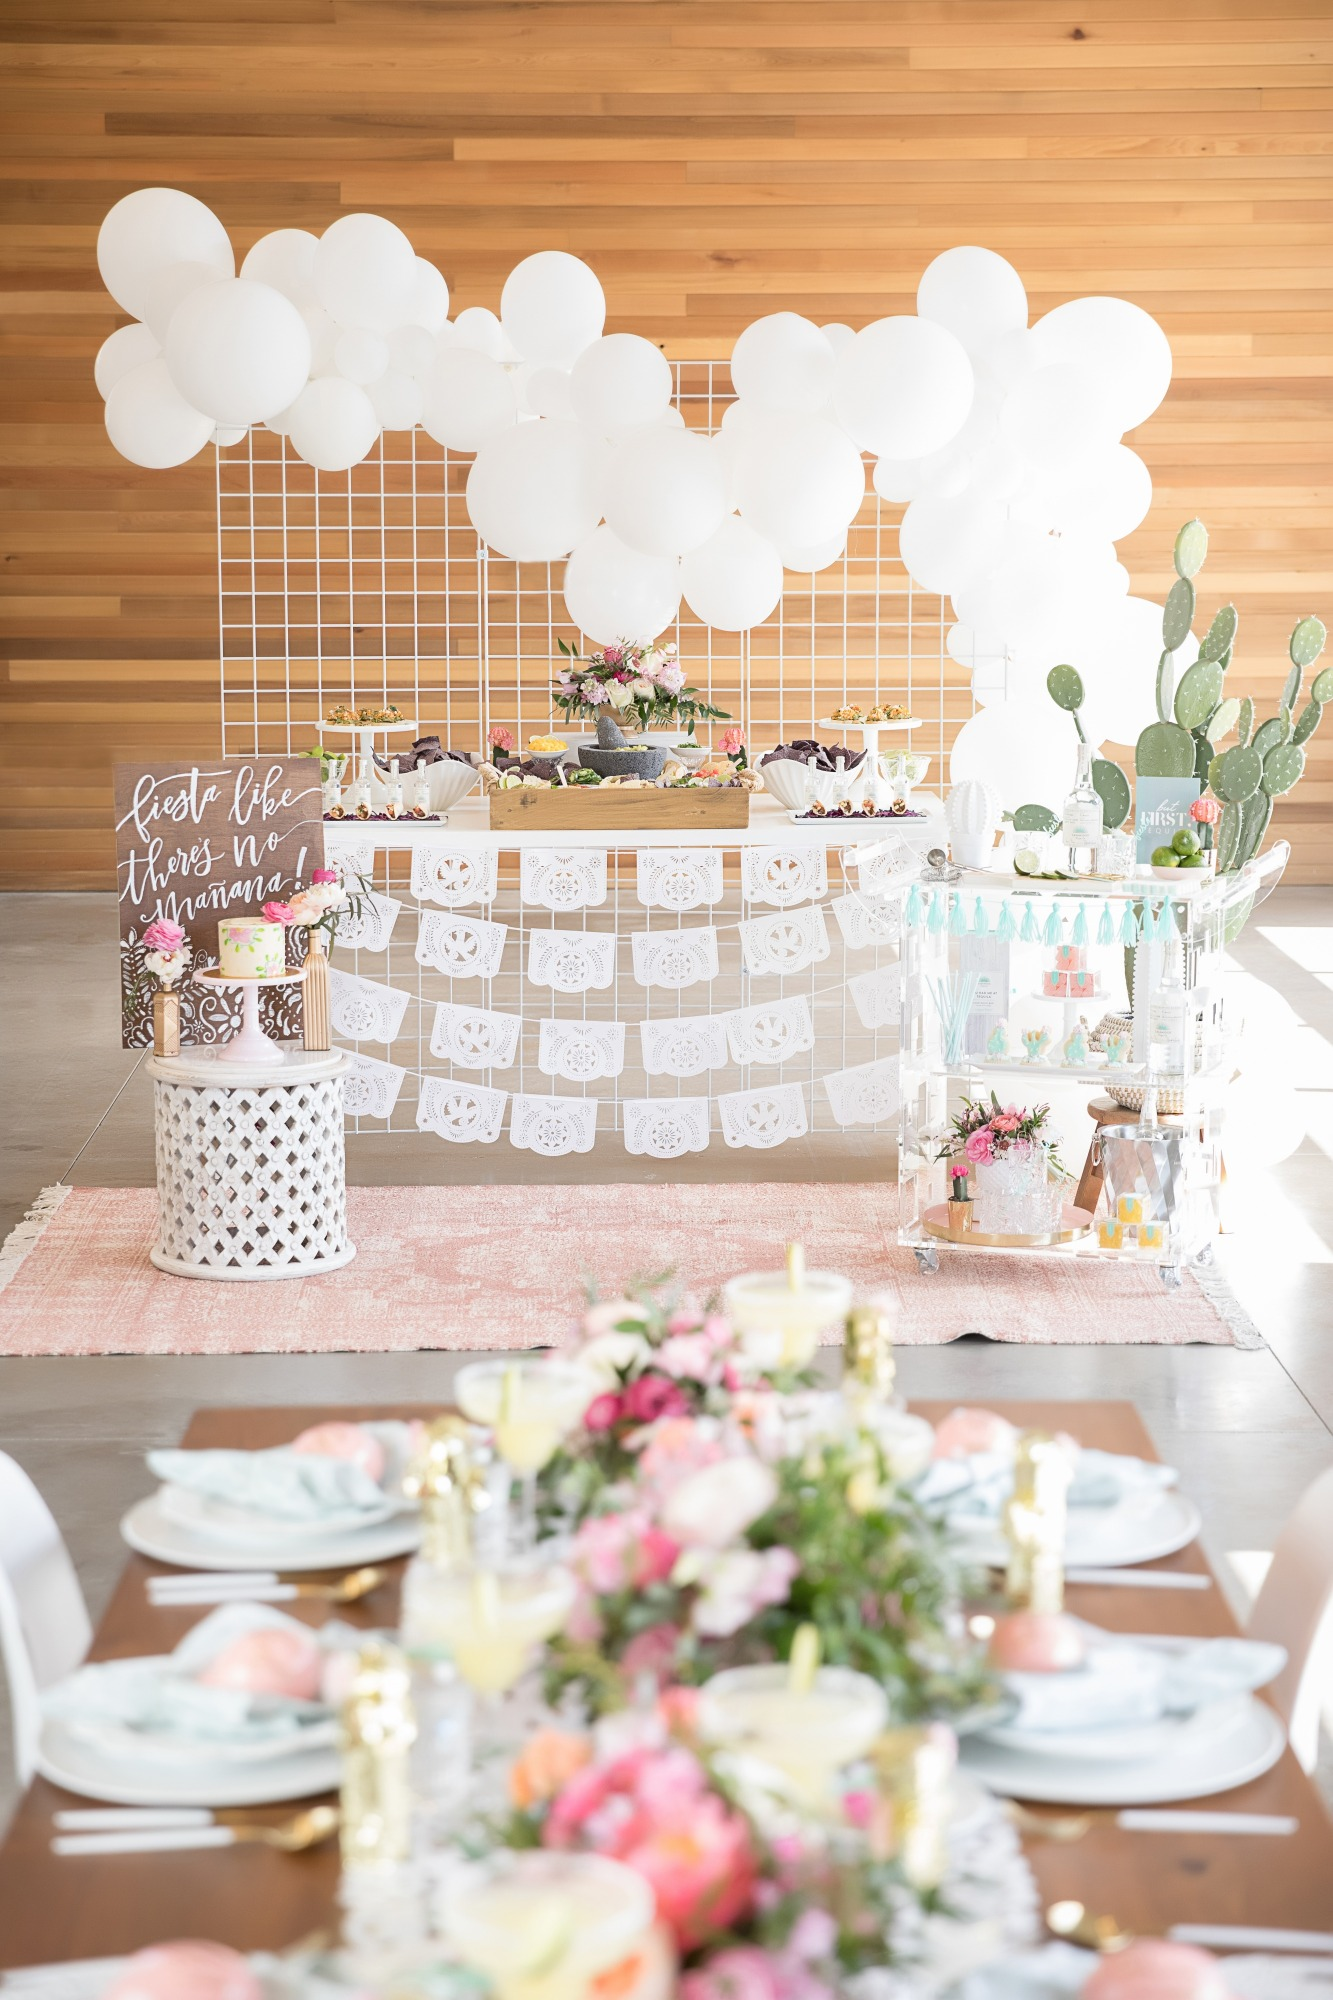 Food and Tablescape from Chic Floral Fiesta Styled by One Stylish Party | Black Twine